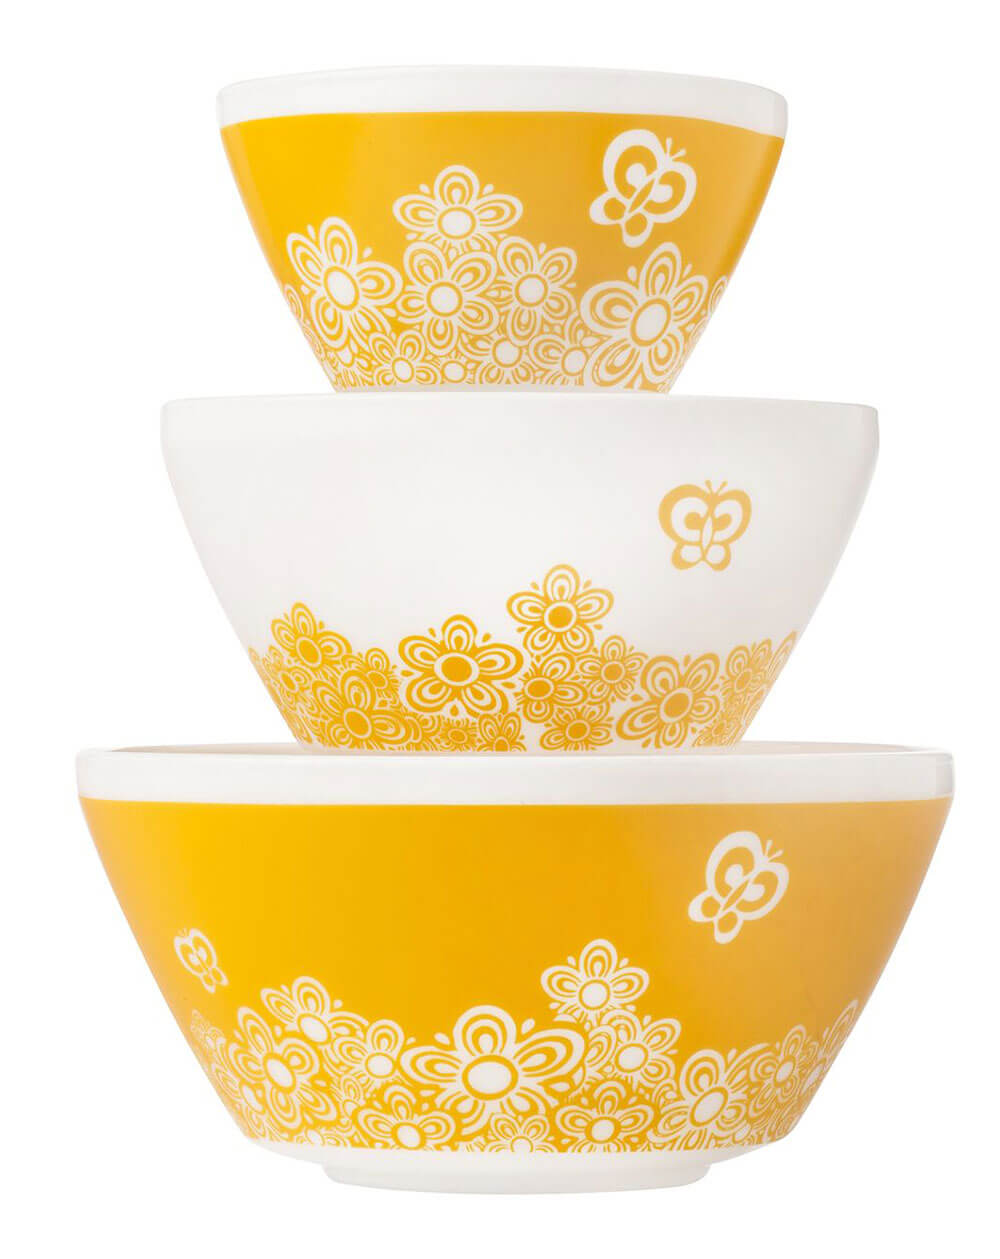 Vintage Charm™ Inspired by Pyrex® collection - Retro Renovation